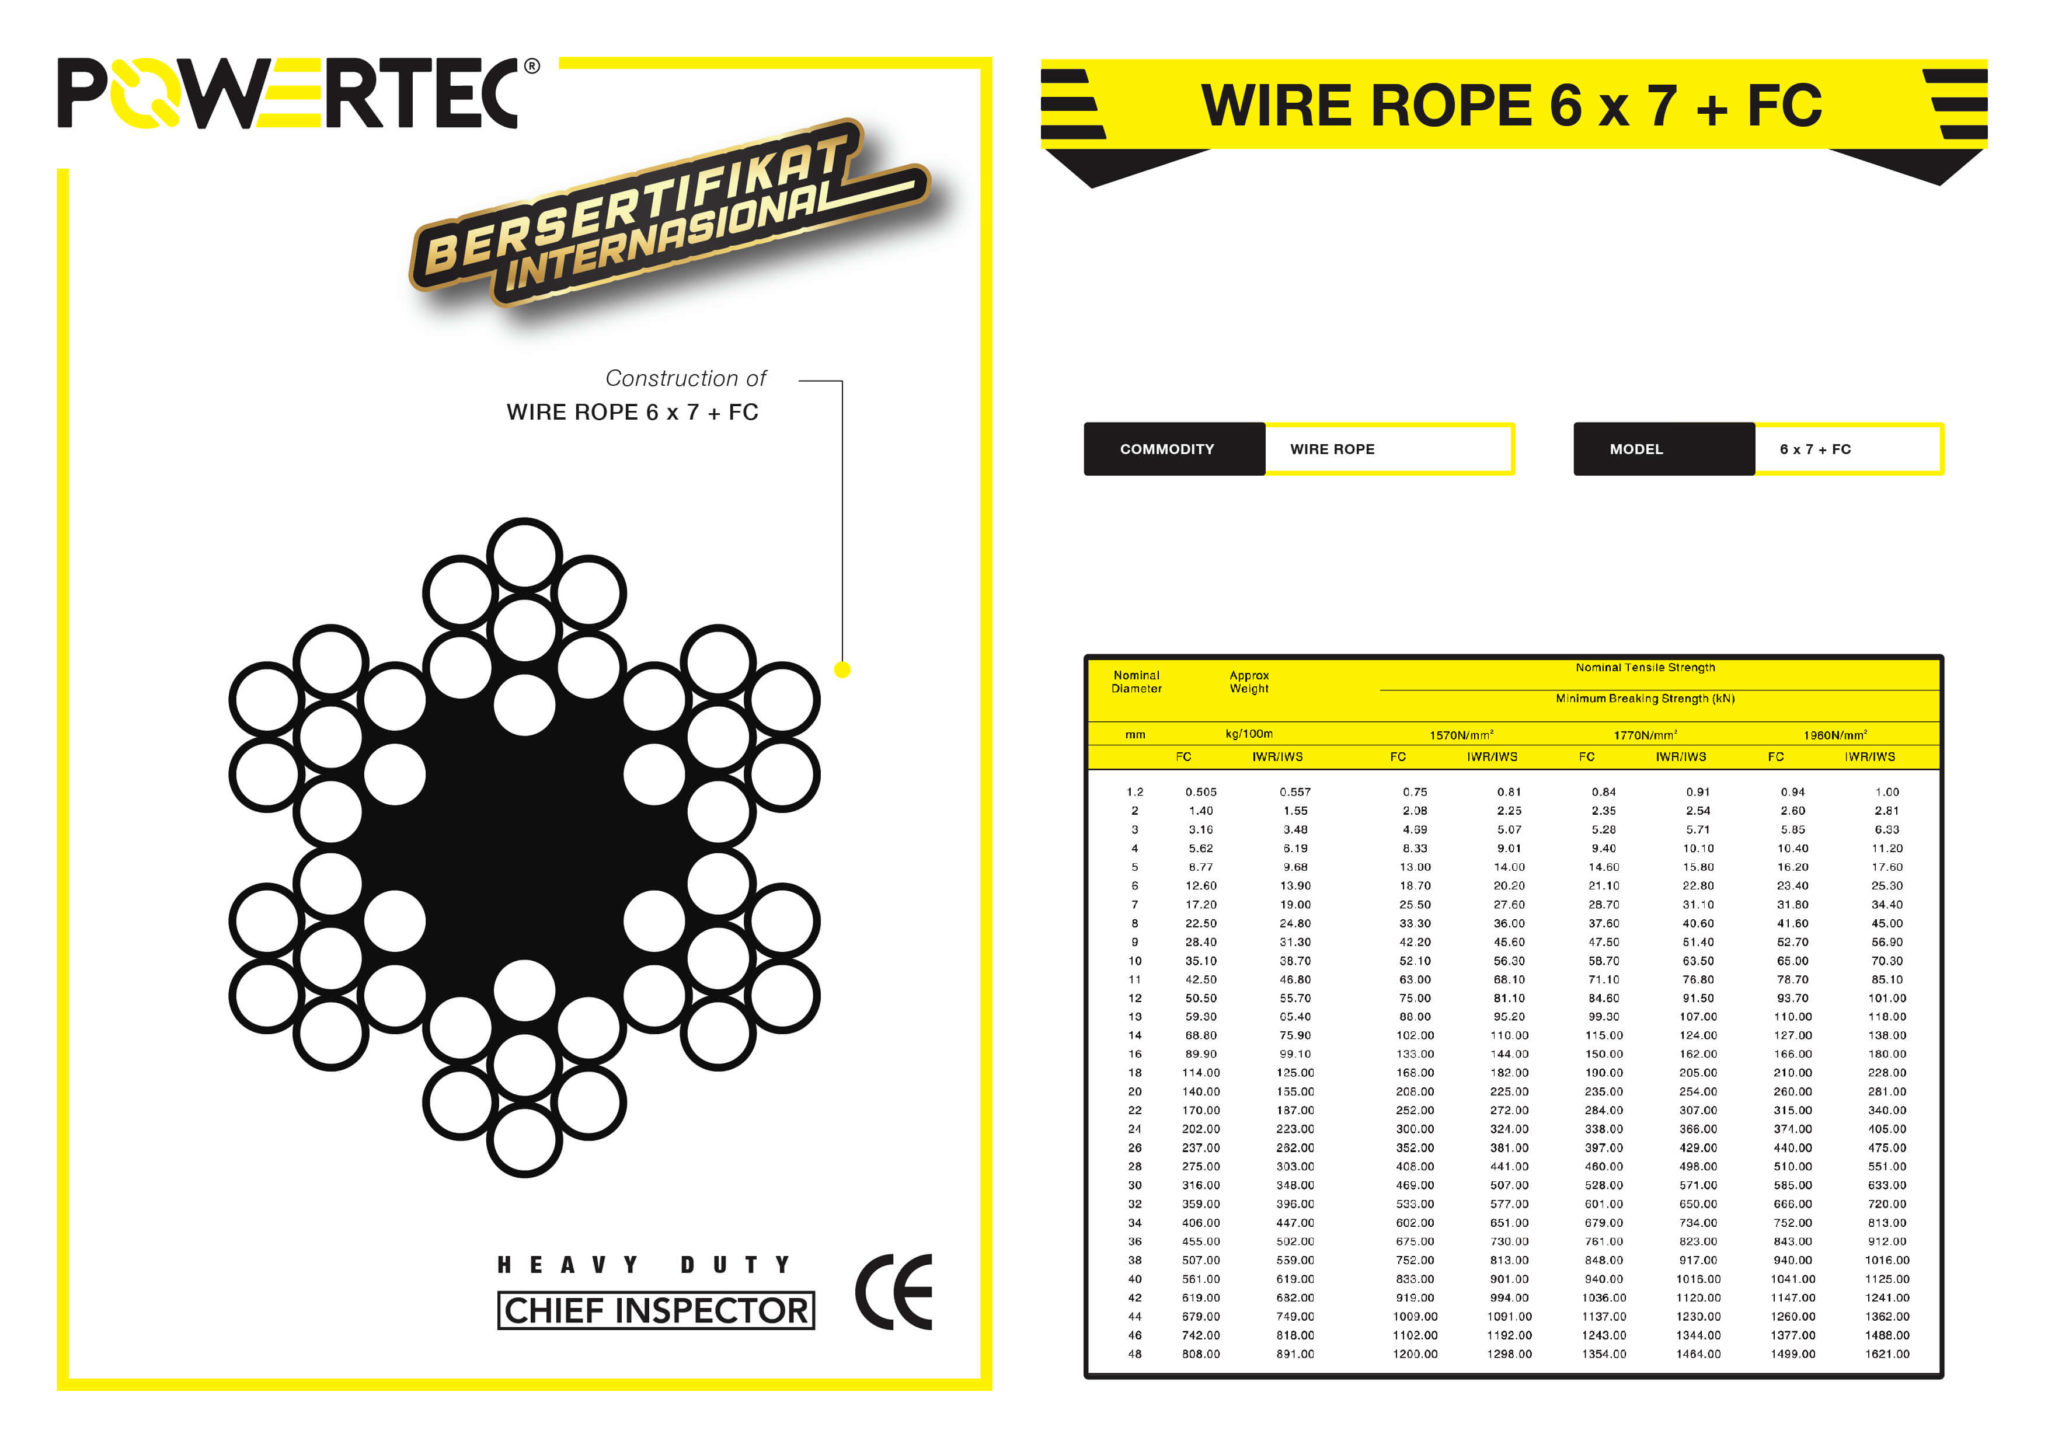 POWERTEC WIRE ROPE 6 x 7 + FC BROCHURE